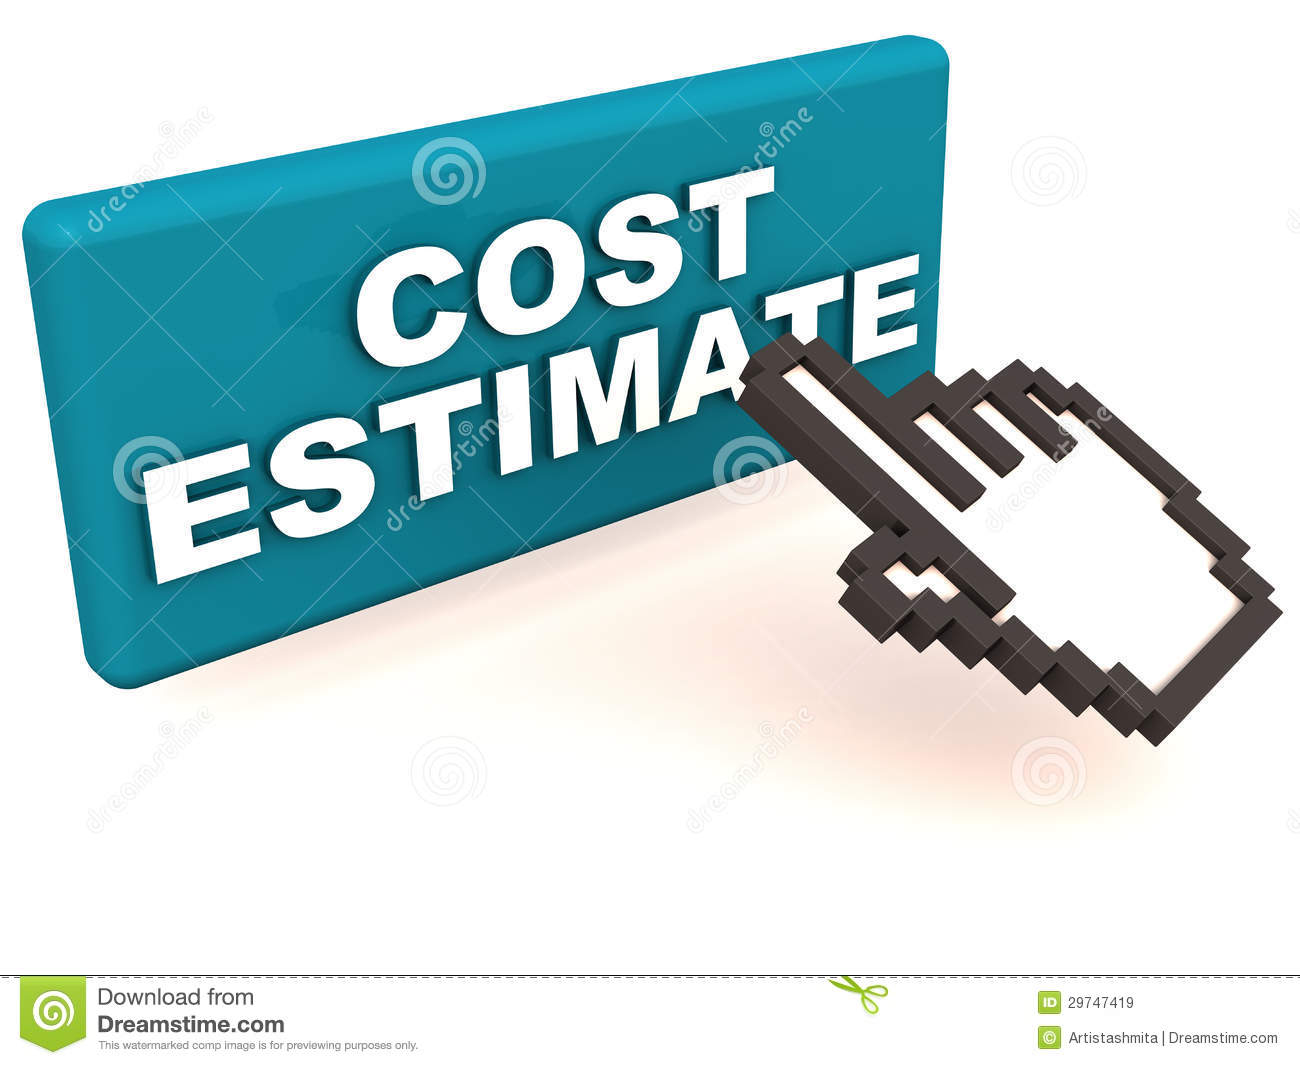 easy cost estimate just click button hand icon clicking button cost estimate label white background 29747419